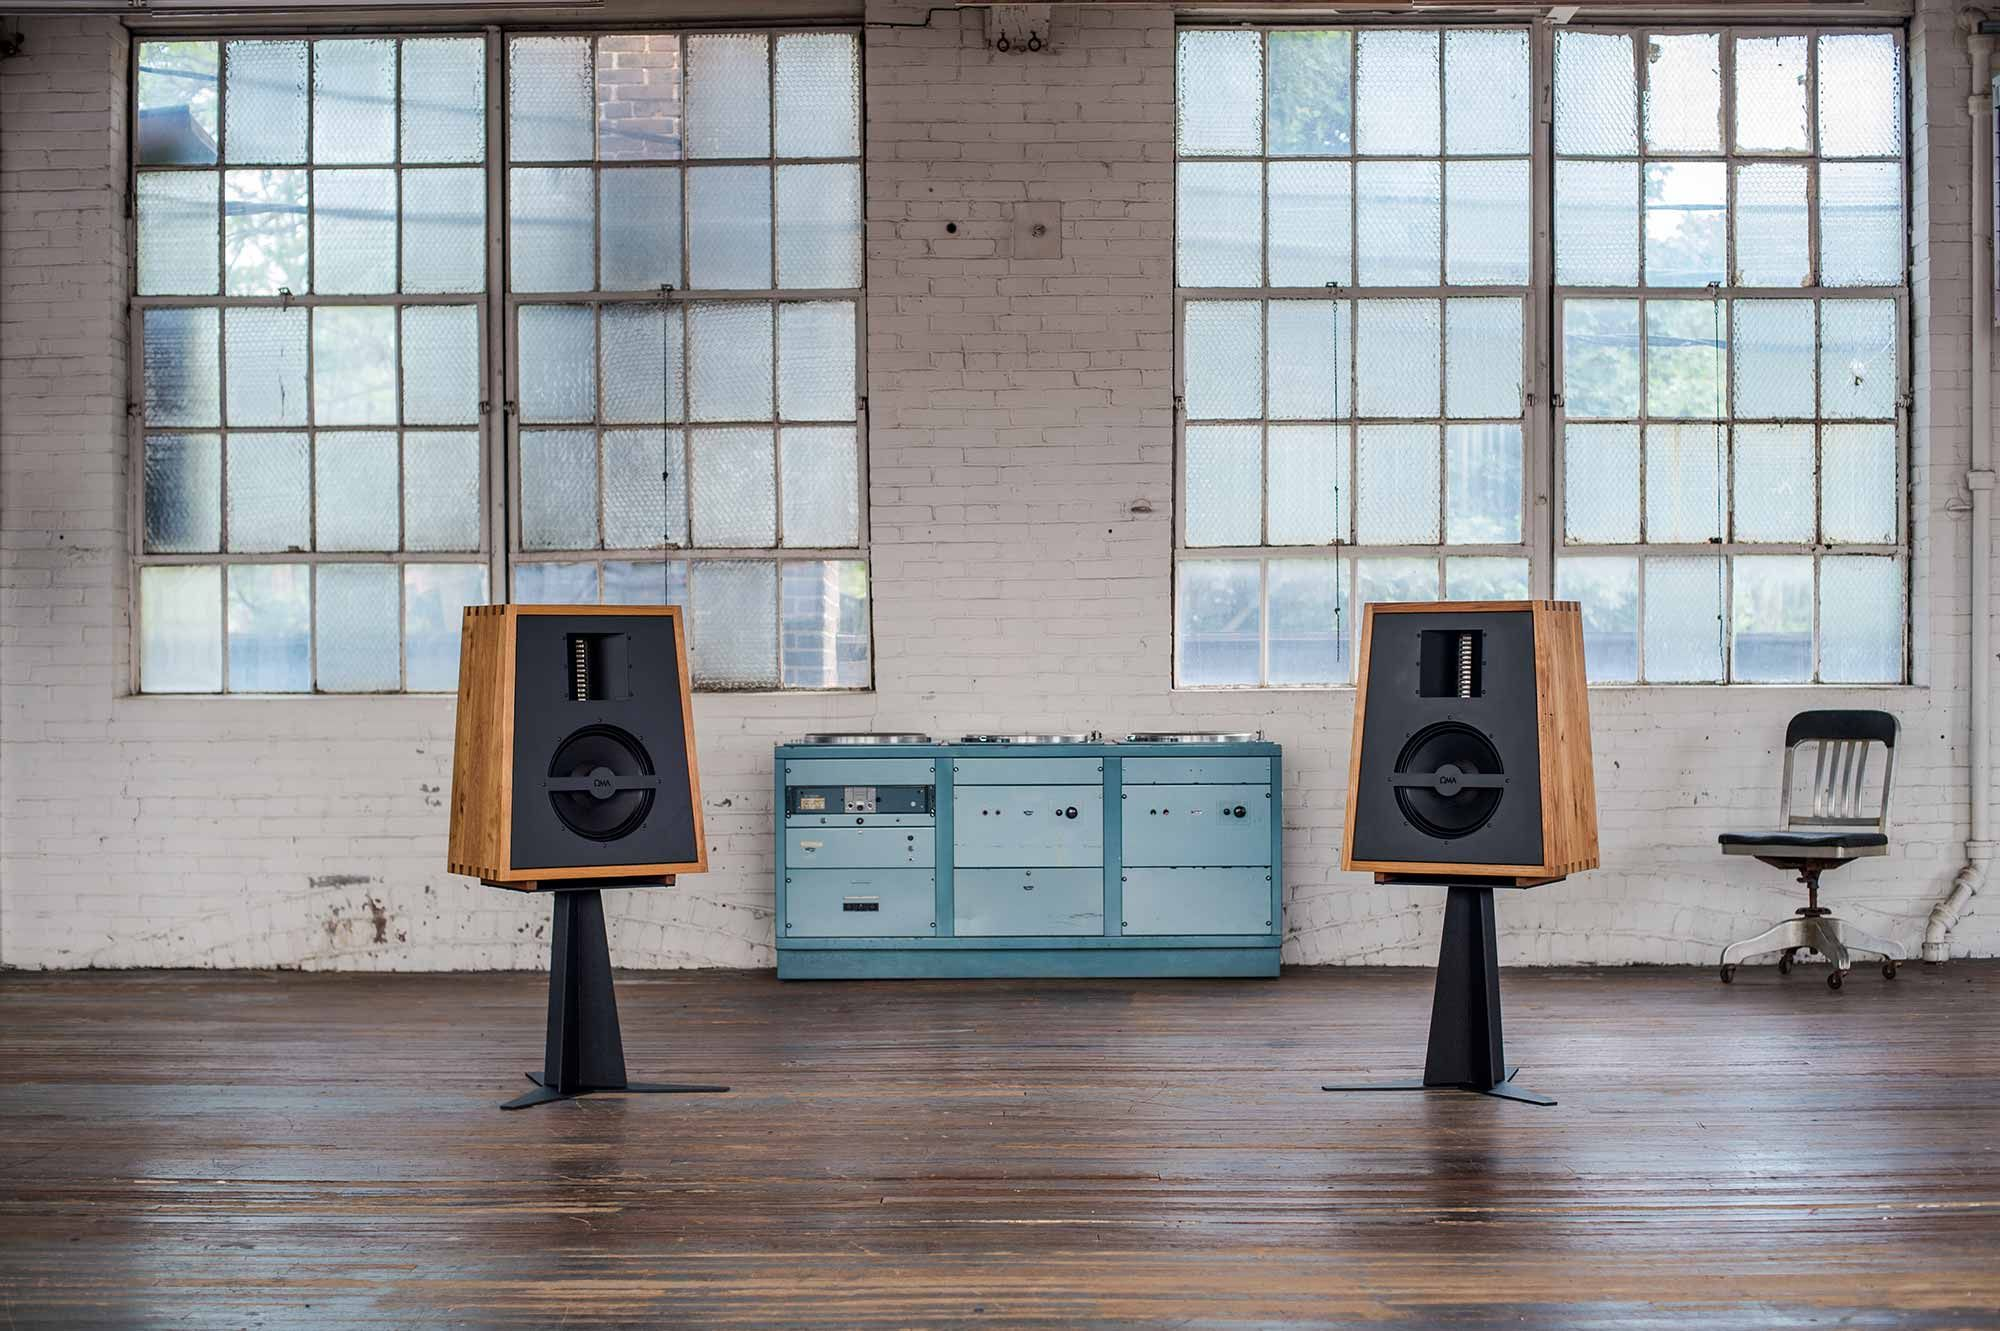 OMA's The Monitor aims for accuracy in both the frequency response domain and the time domain. In other words, The Monitor is not just smooth and flat but extremely accurate in conveying the timing of music.